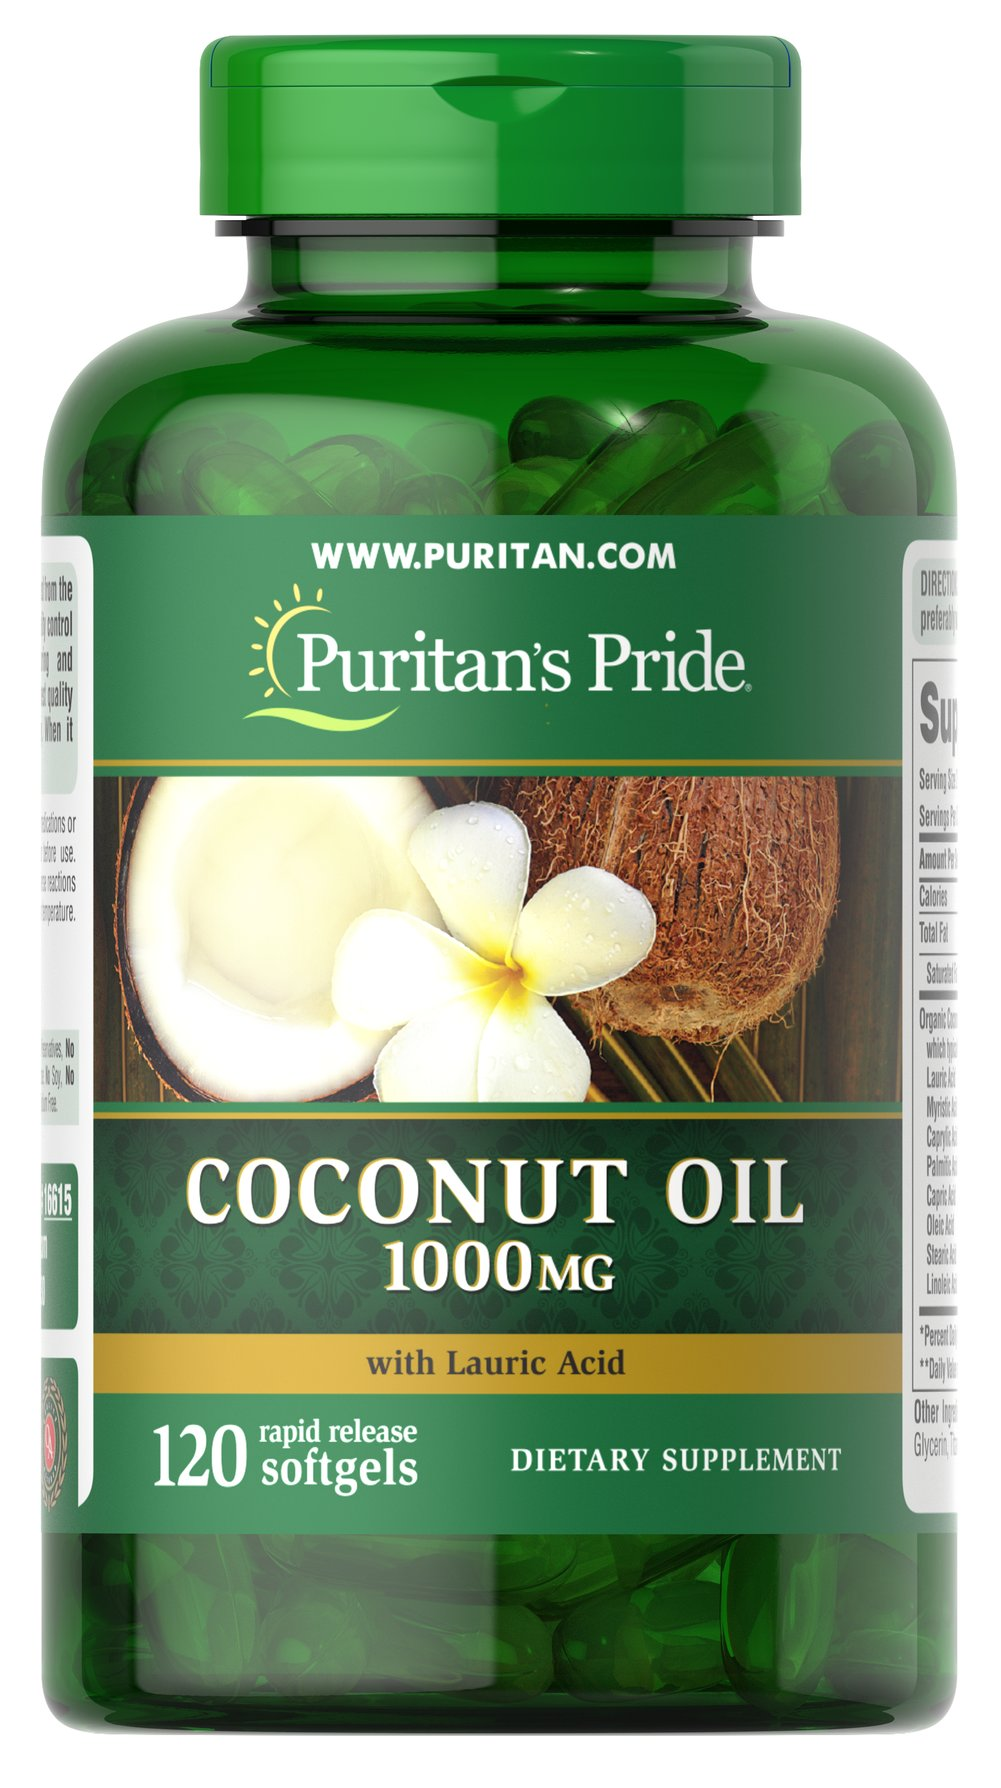 Coconut Oil 1000 mg <p>Coconuts are enjoyed in tropical regions around the world and now you can enjoy the benefits of Coconut Oil in a convenient softgel. Coconut Oil provides you with a natural energy source, and contains essential fatty acids and Medium Chain Triglycerides (MCTs).   MCTs are oxidized differently in the body than other fats, making Coconut Oil a readily available energy source.**</p> 120 Softgels 1000 mg $18.99